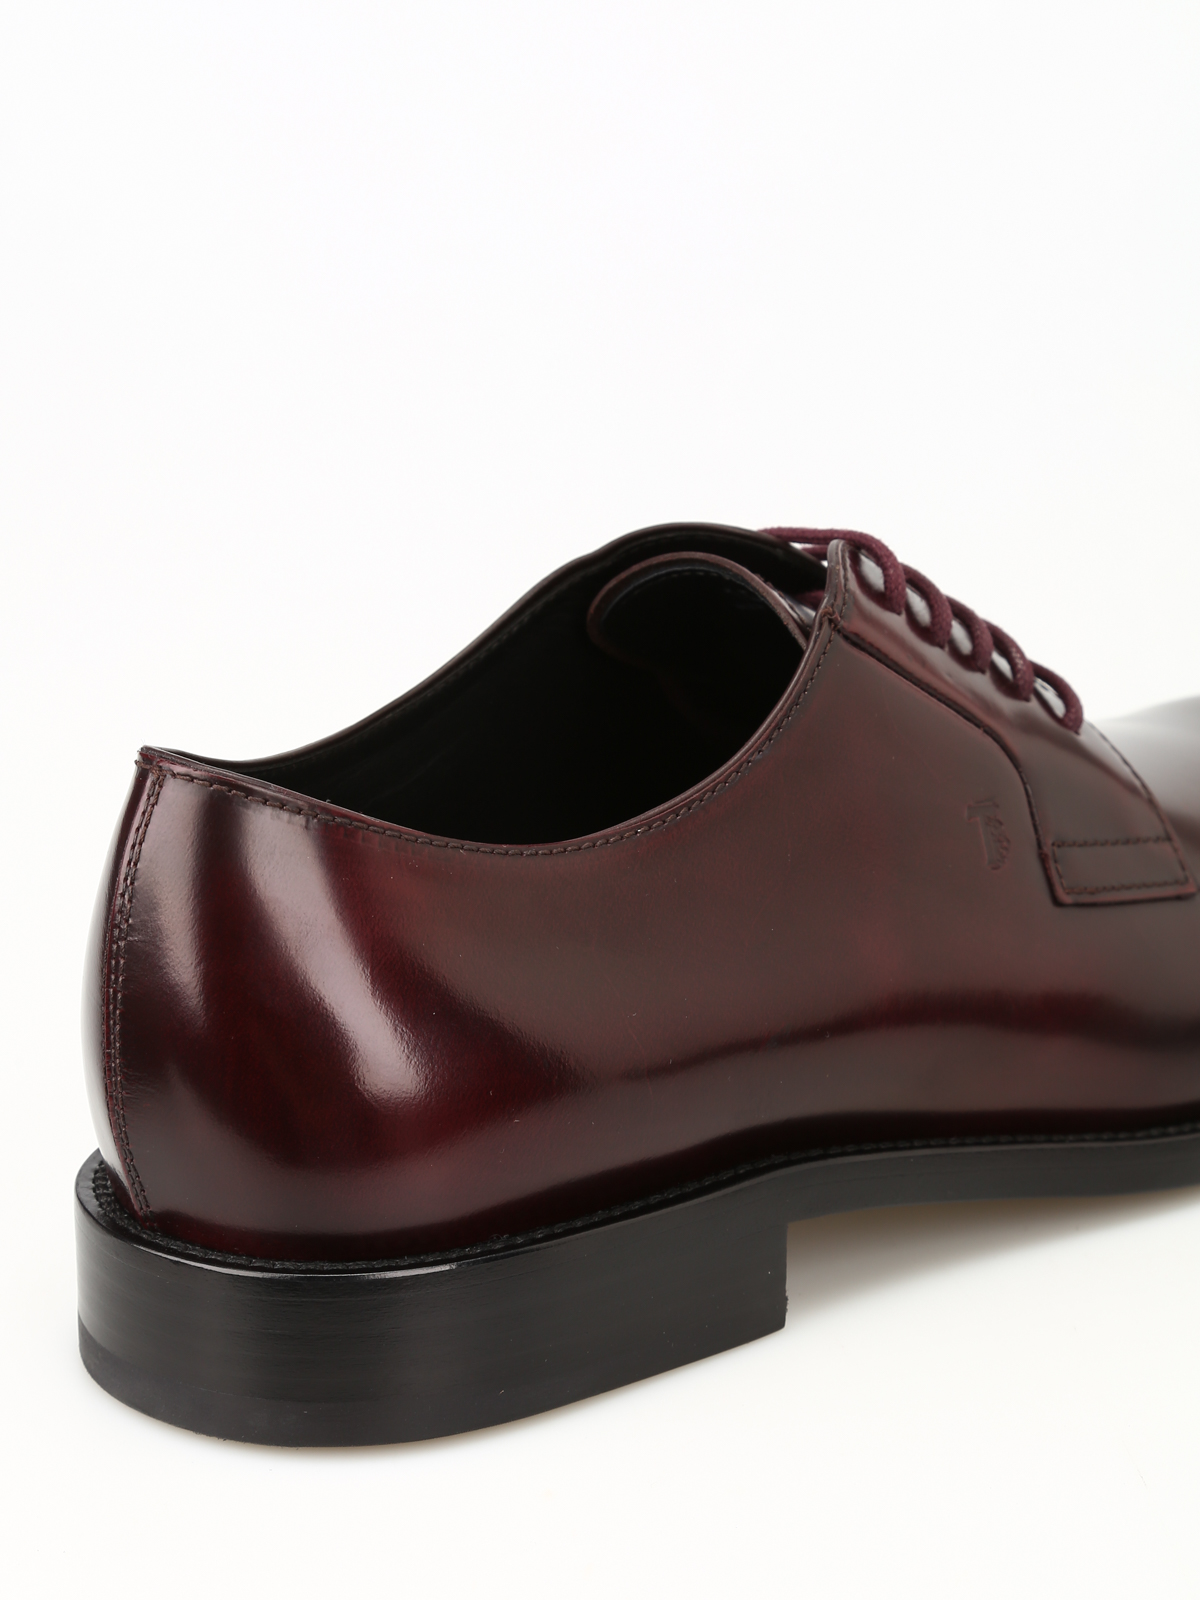 f37b3032573 Tod'S - Burgundy leather Derby shoes - classic shoes ...